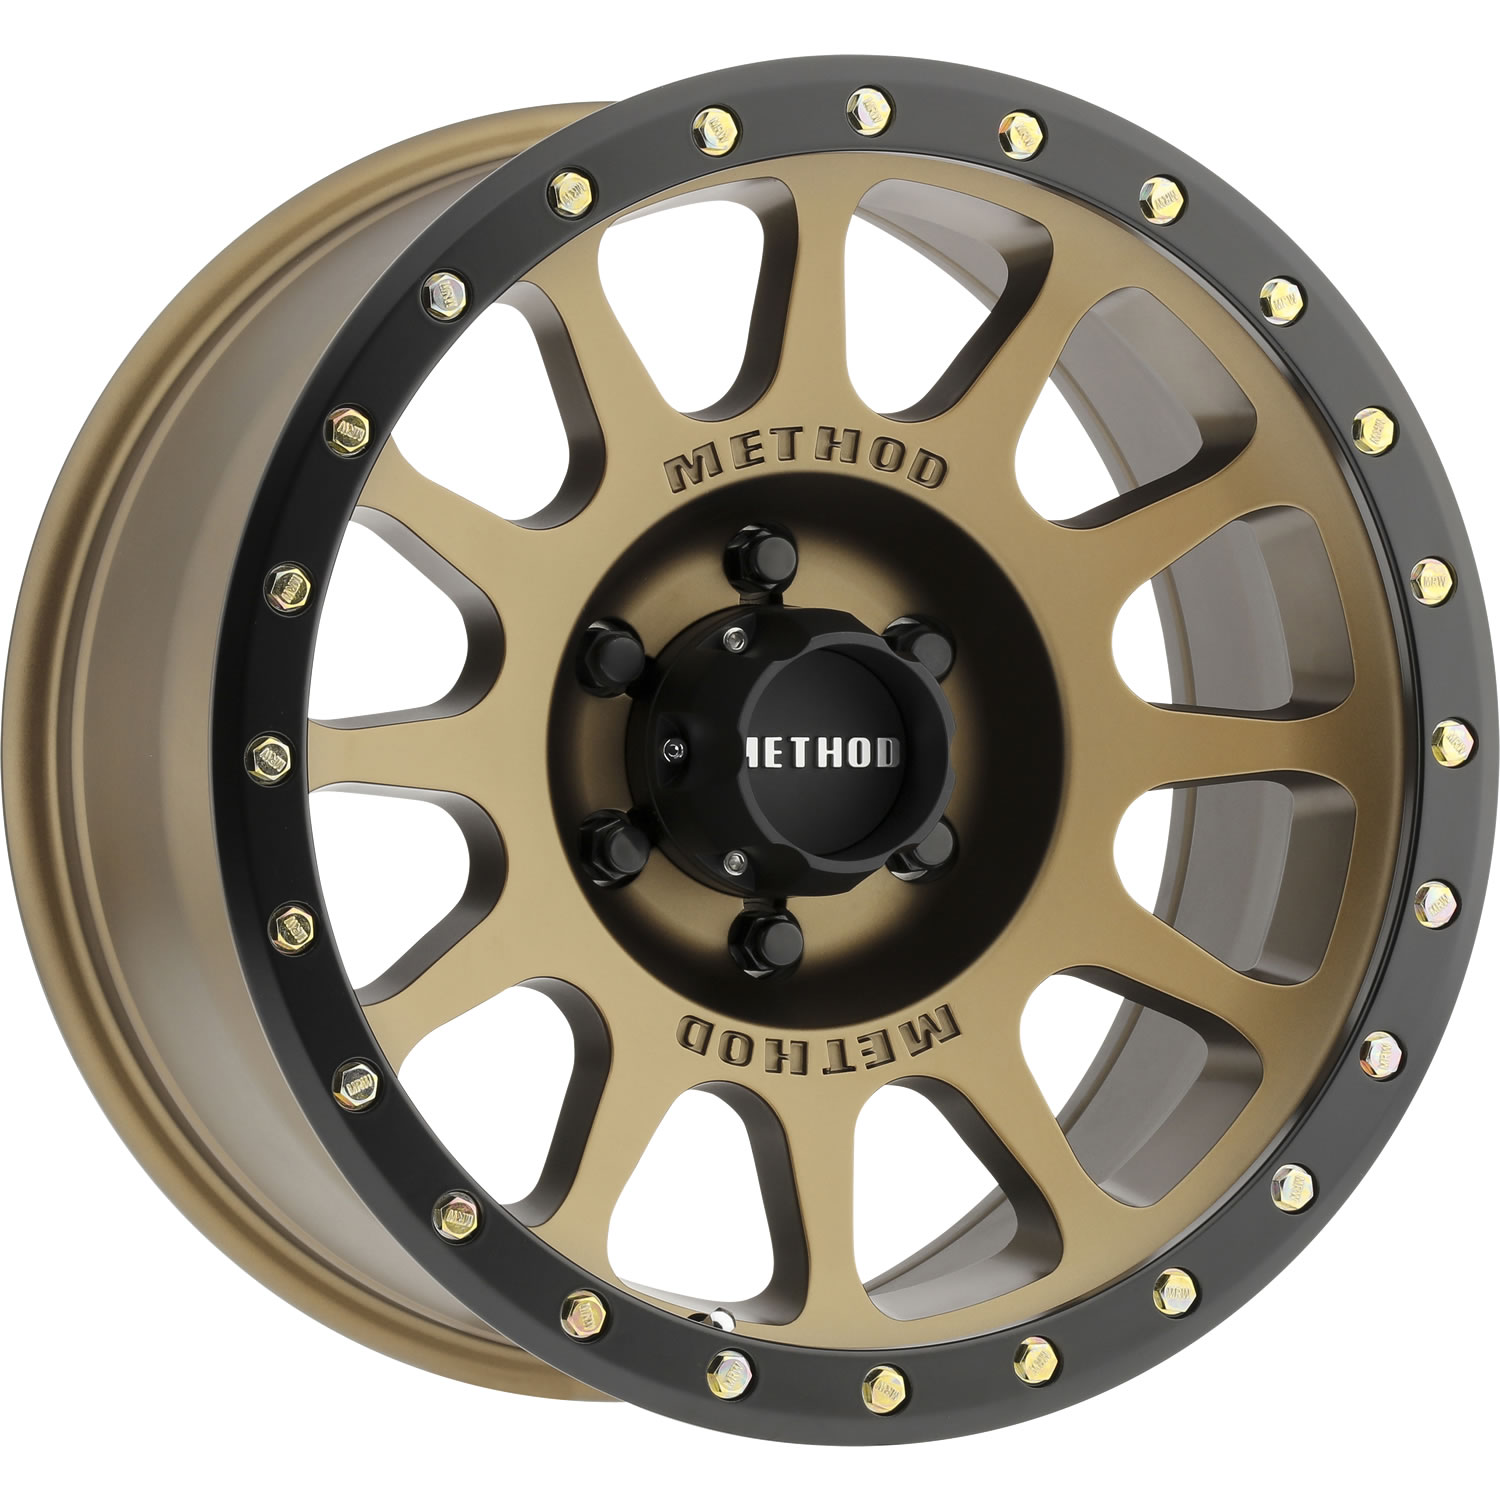 Method NV 17x8.5 0mm | MR30578560900